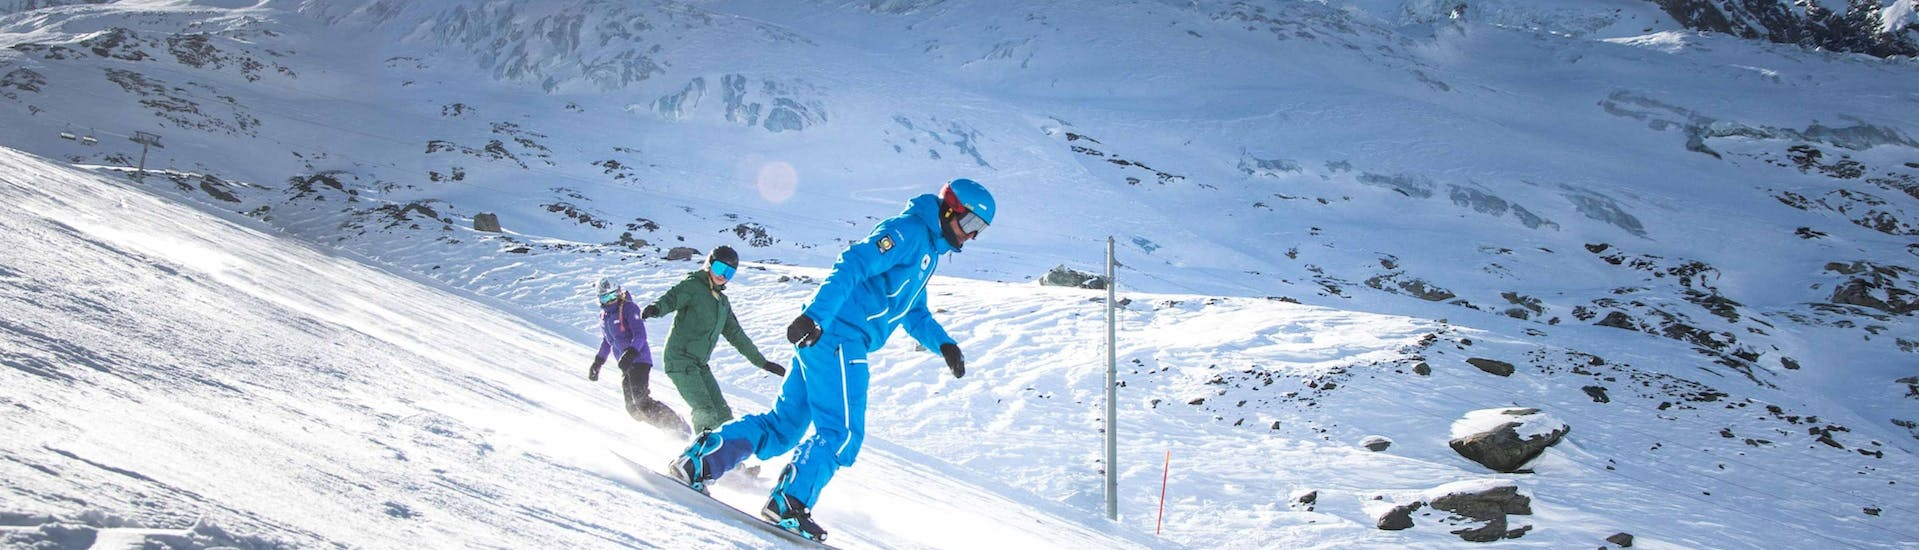 Adult Discovery Snowboarding Lessons for First Timers